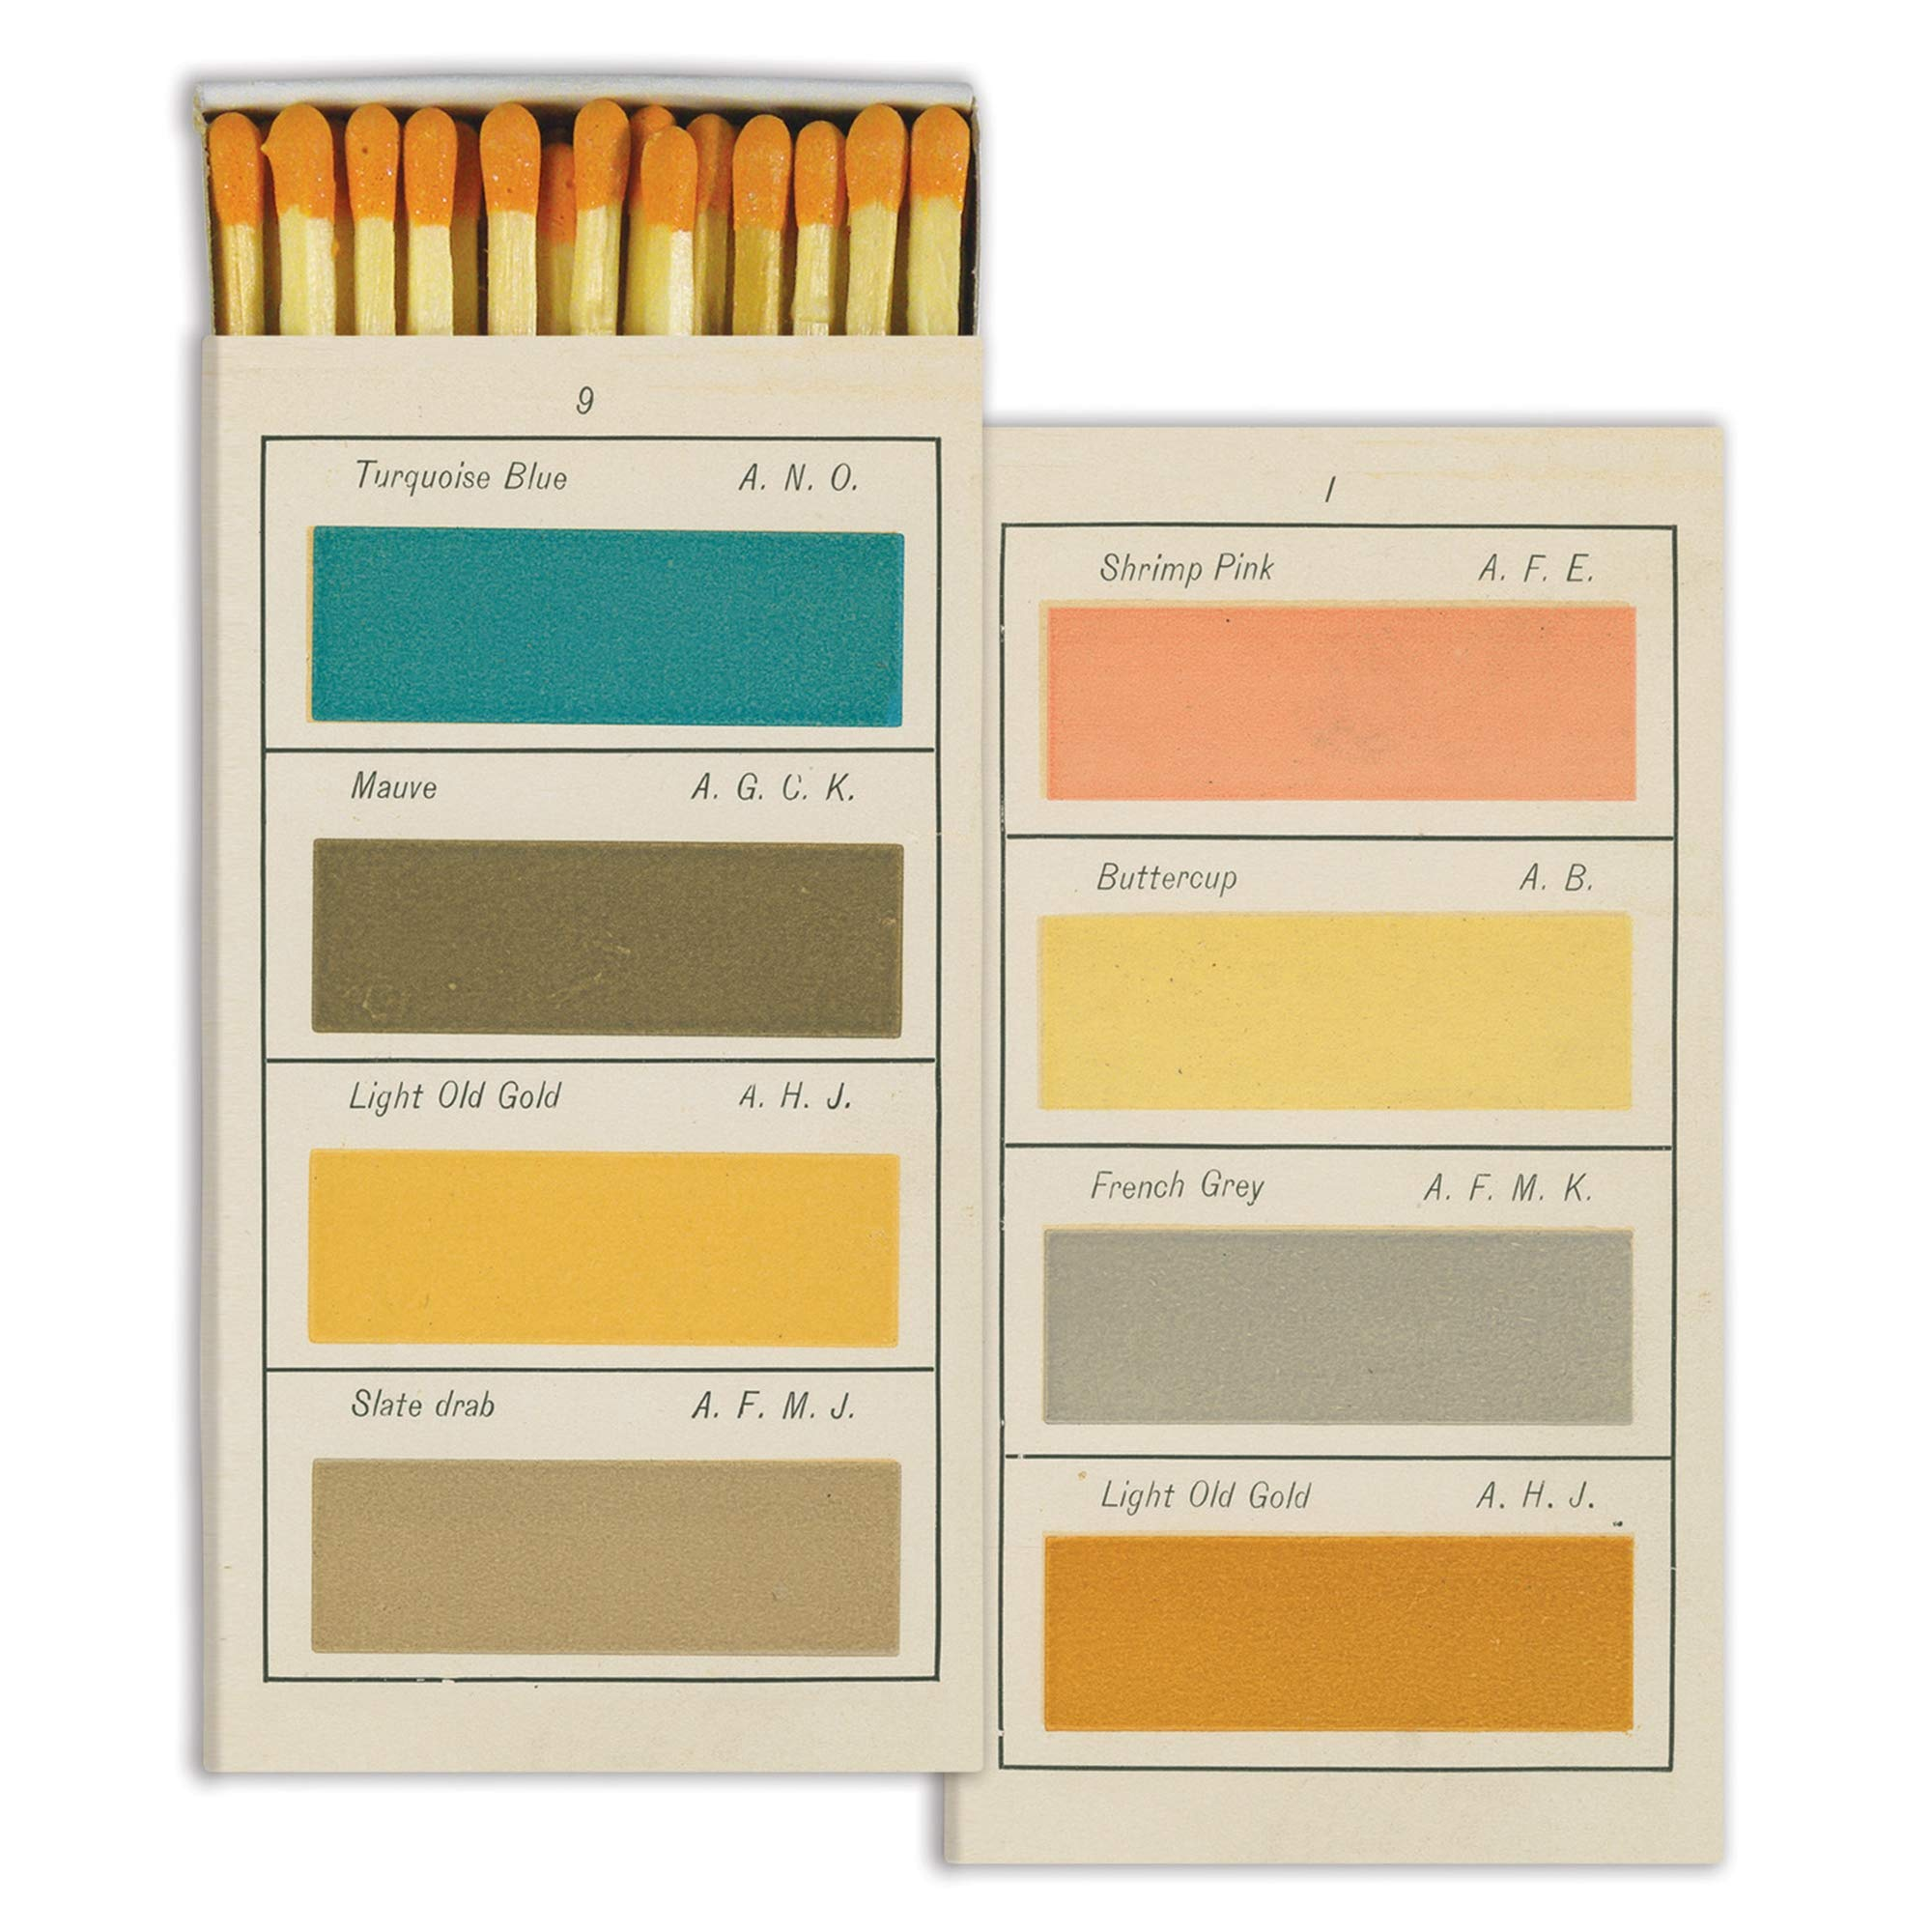 Painters Handbook Match Boxes with Wooden Matches | Set of 3 Decorative Match Boxes